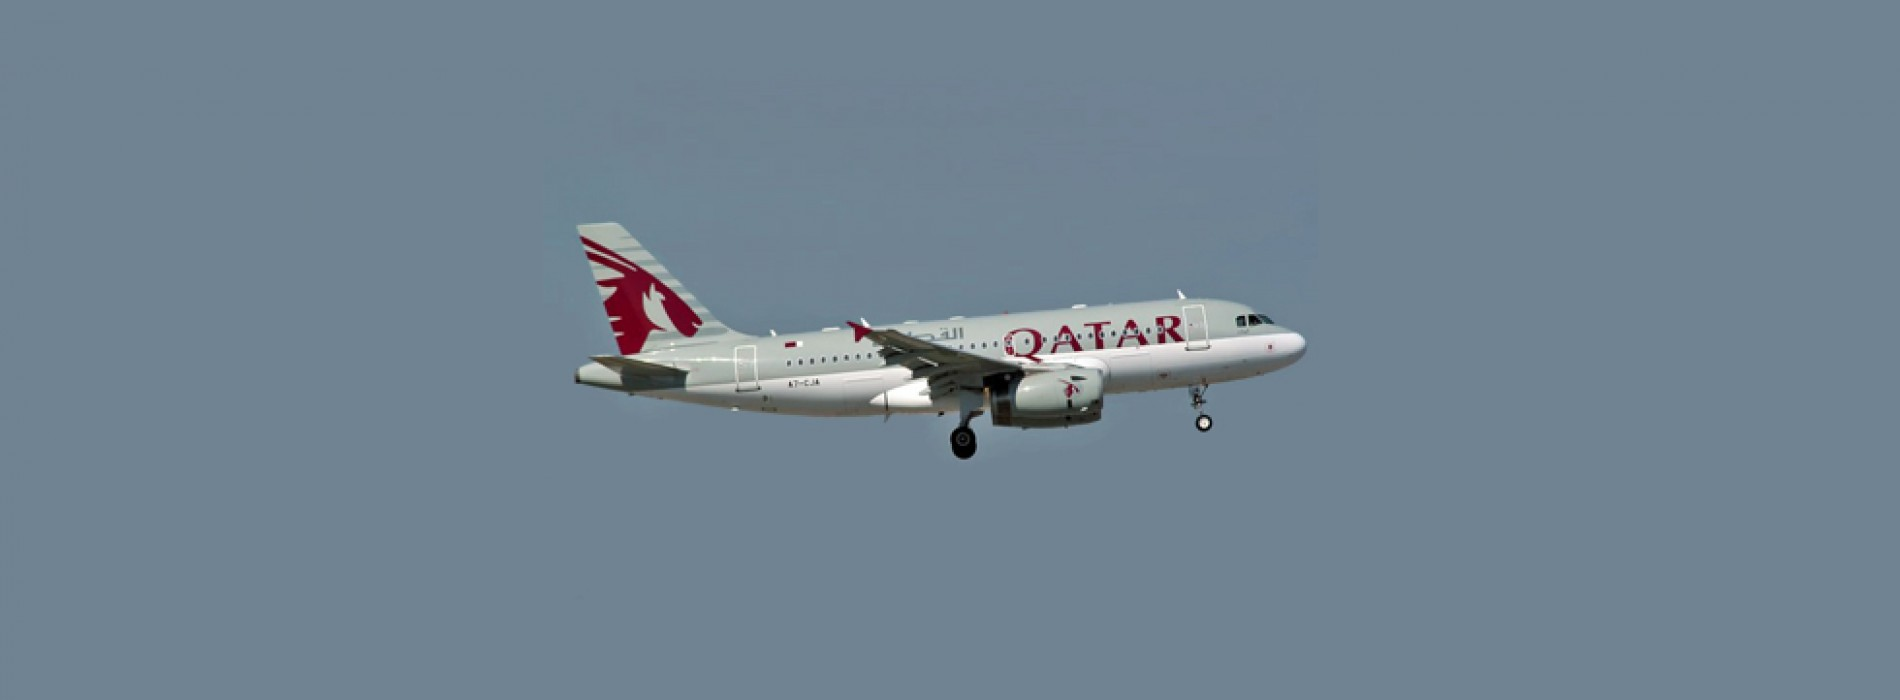 Flights to Qatar will operate, but may get longer, costlier